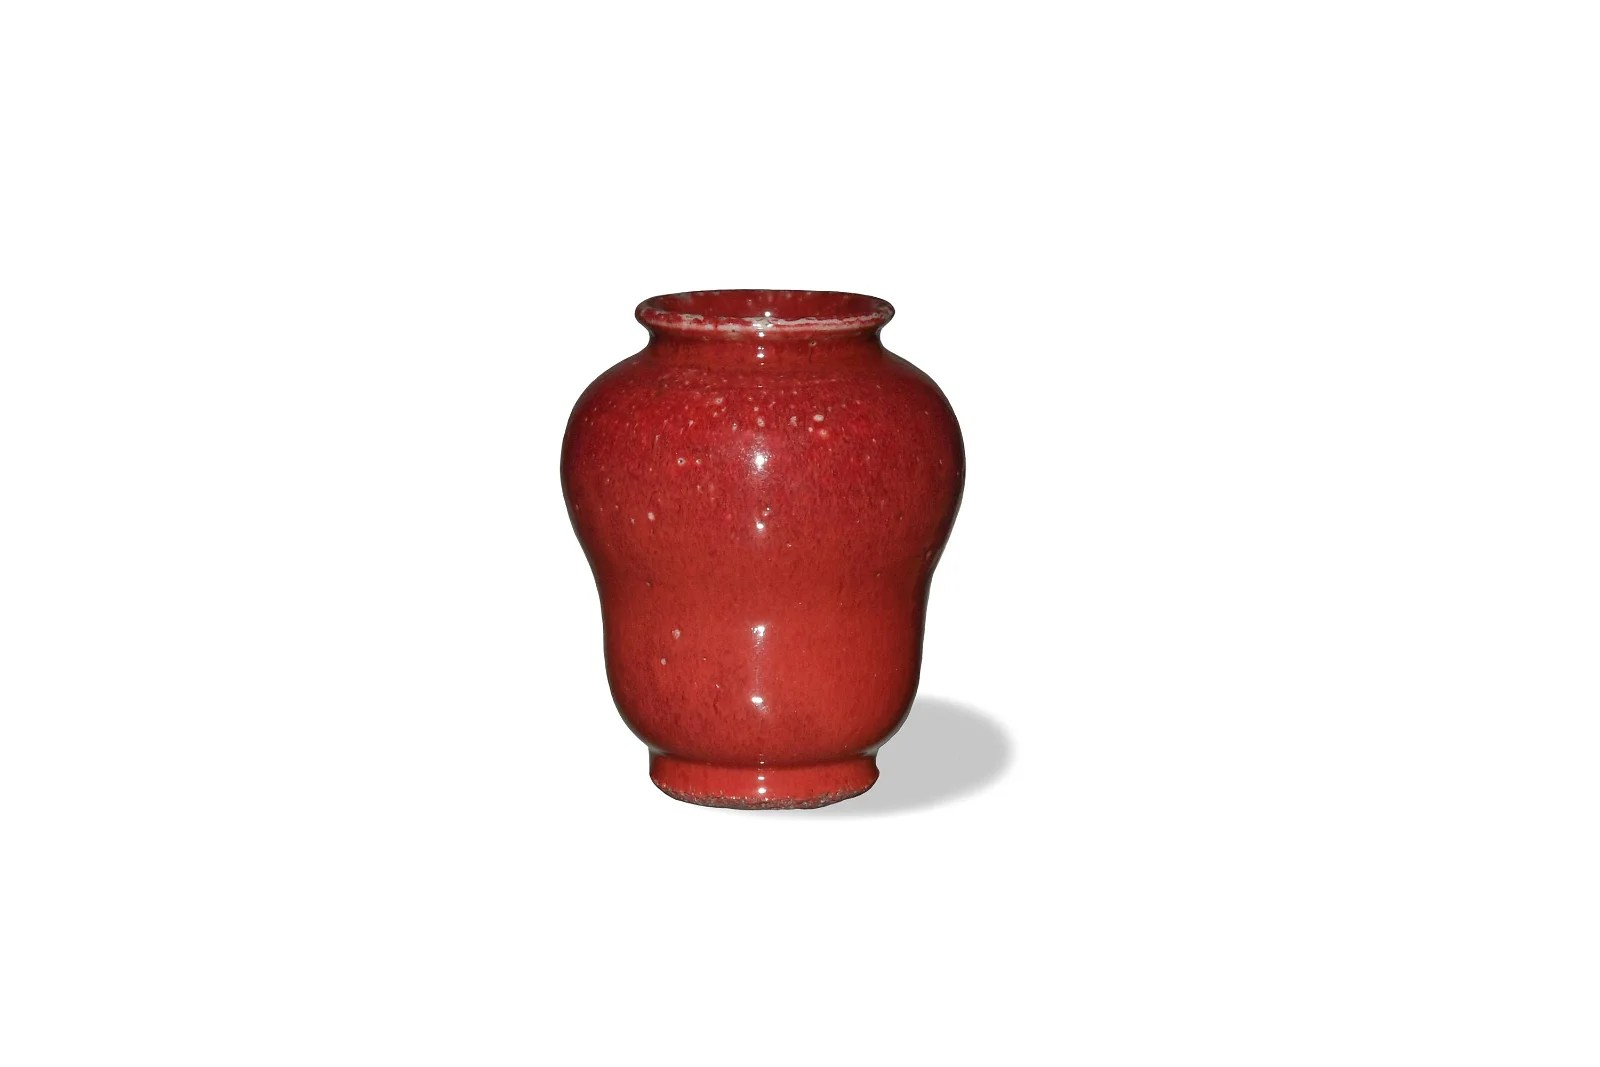 Chinese Red Glazed Jar, Early 19th Century